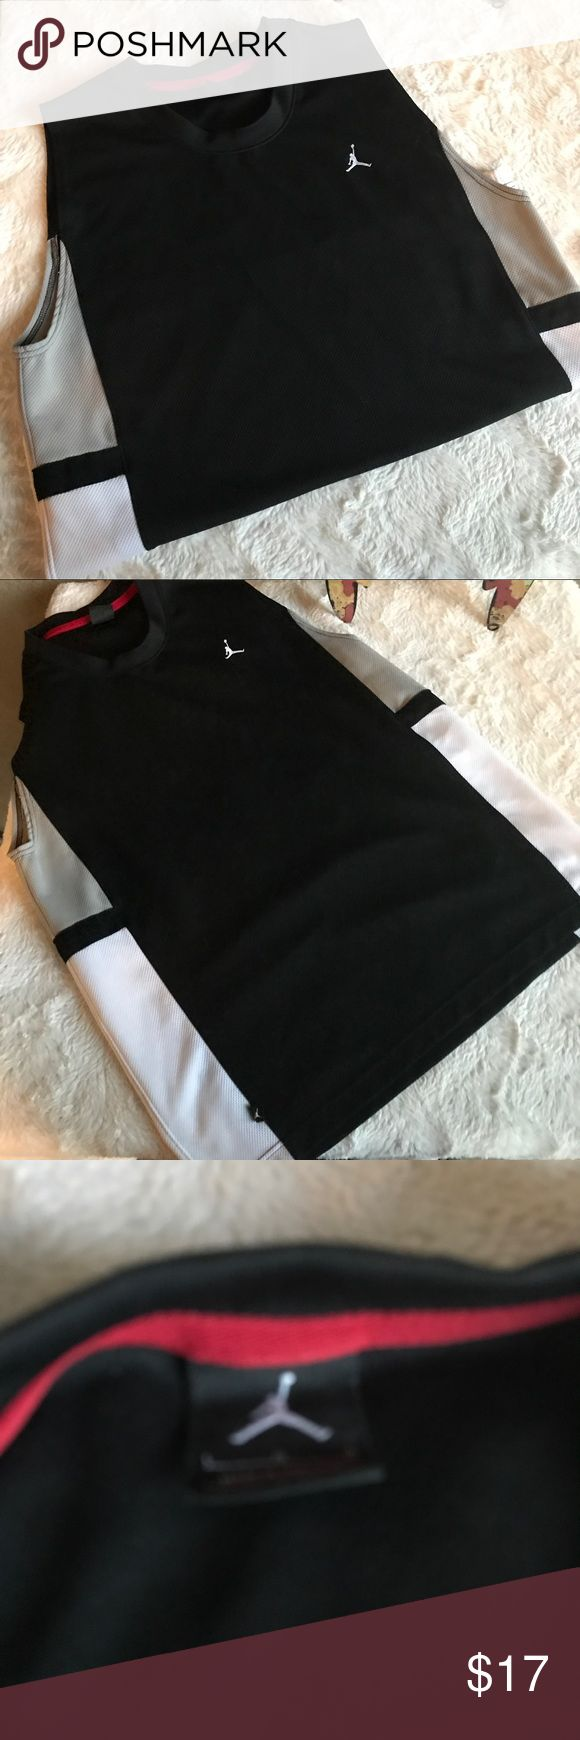 Nike Air Jordan JUMPMAN Sleeveless Jersey Tank Condition: Preowned - Excellent Condition! Shirt is free from holes, stains, snags or missing tags.  Description: * Jumpman * Air Jordan jersey tank top / sleeveless shirt * Black body; mostly white side panels with Gray   * Embroidered logo on front * 100% Polyester  * Soft on the inside * Slits at the bottom sides * Machine washable Air Jordan Shirts Tank Tops